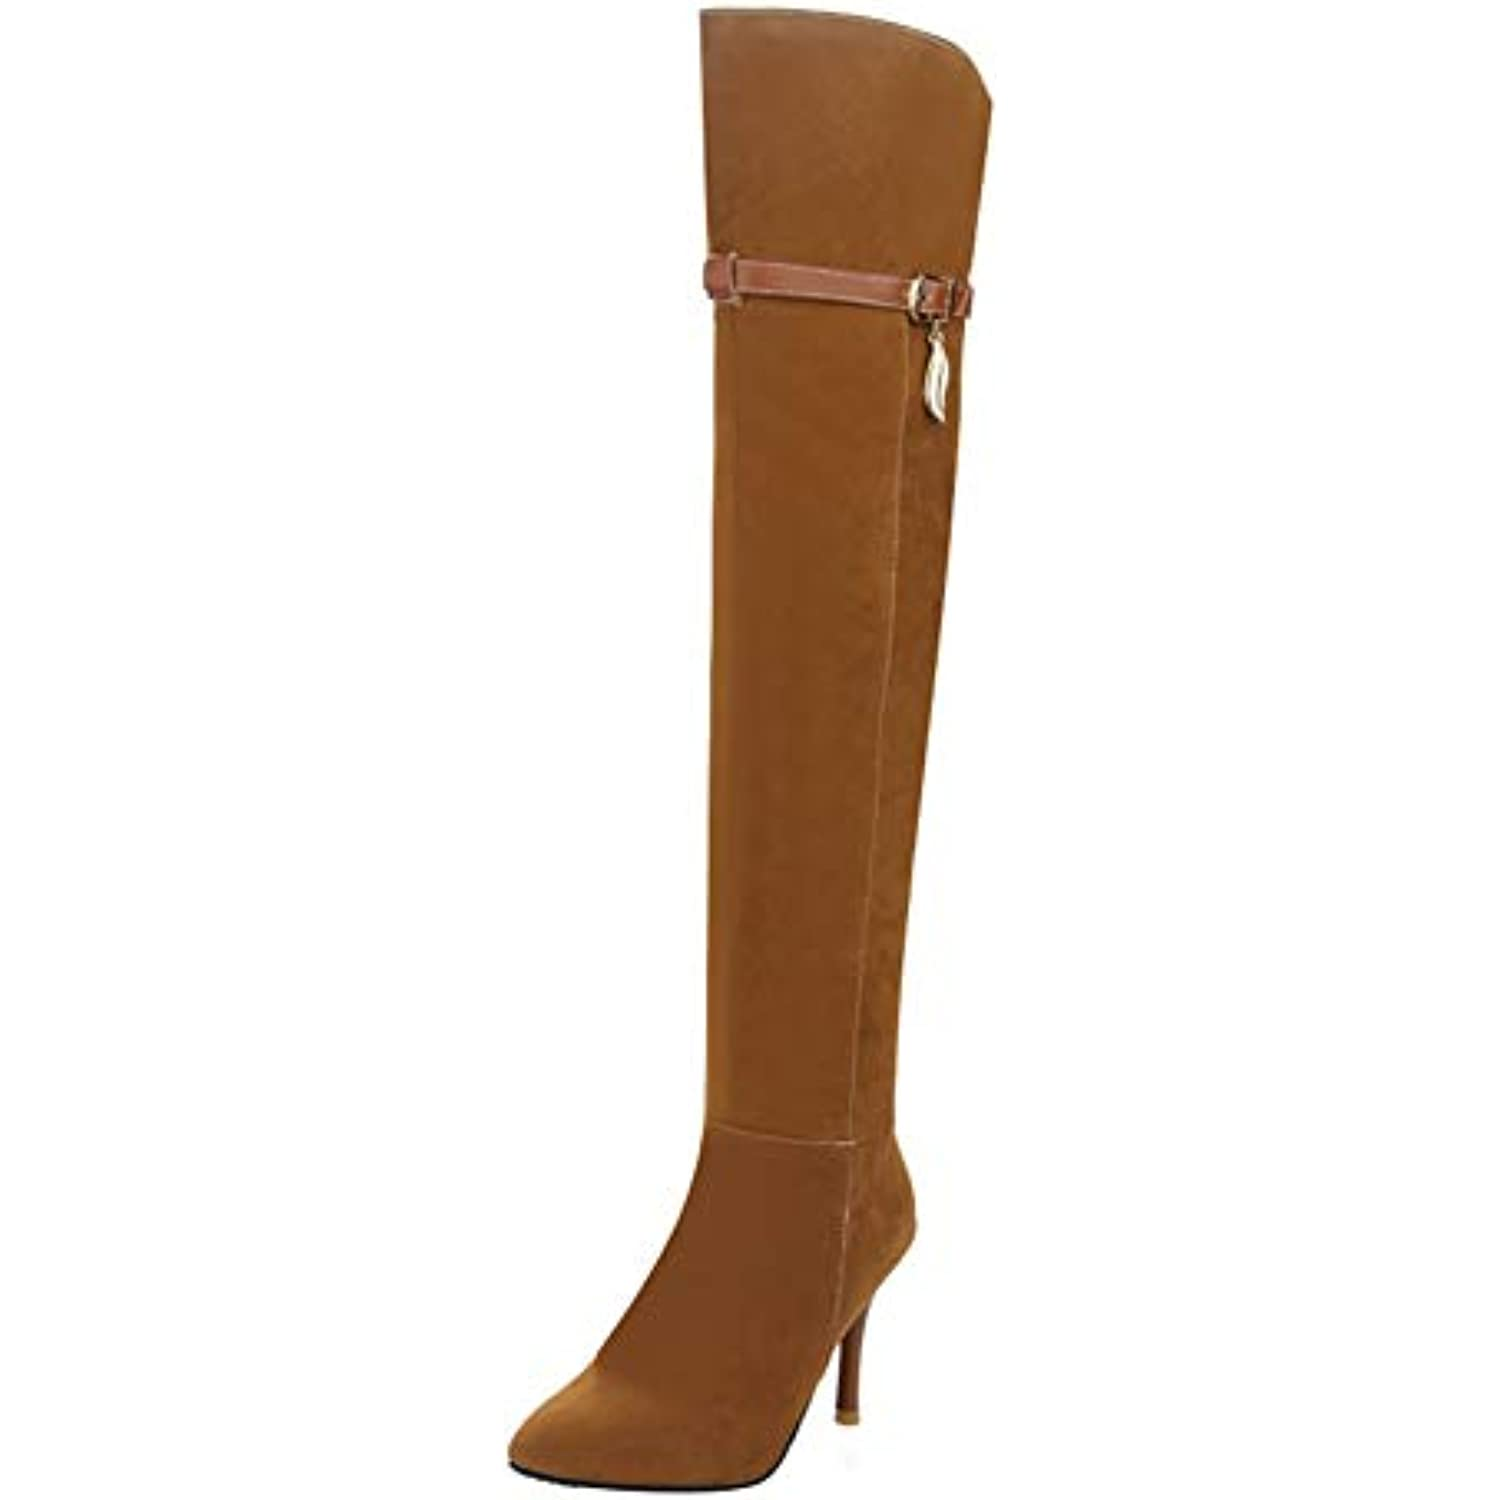 Longue Knee Chaussure Femme Sexy Botte Cuissarde Boots Ye Pointu p0qwxFEq